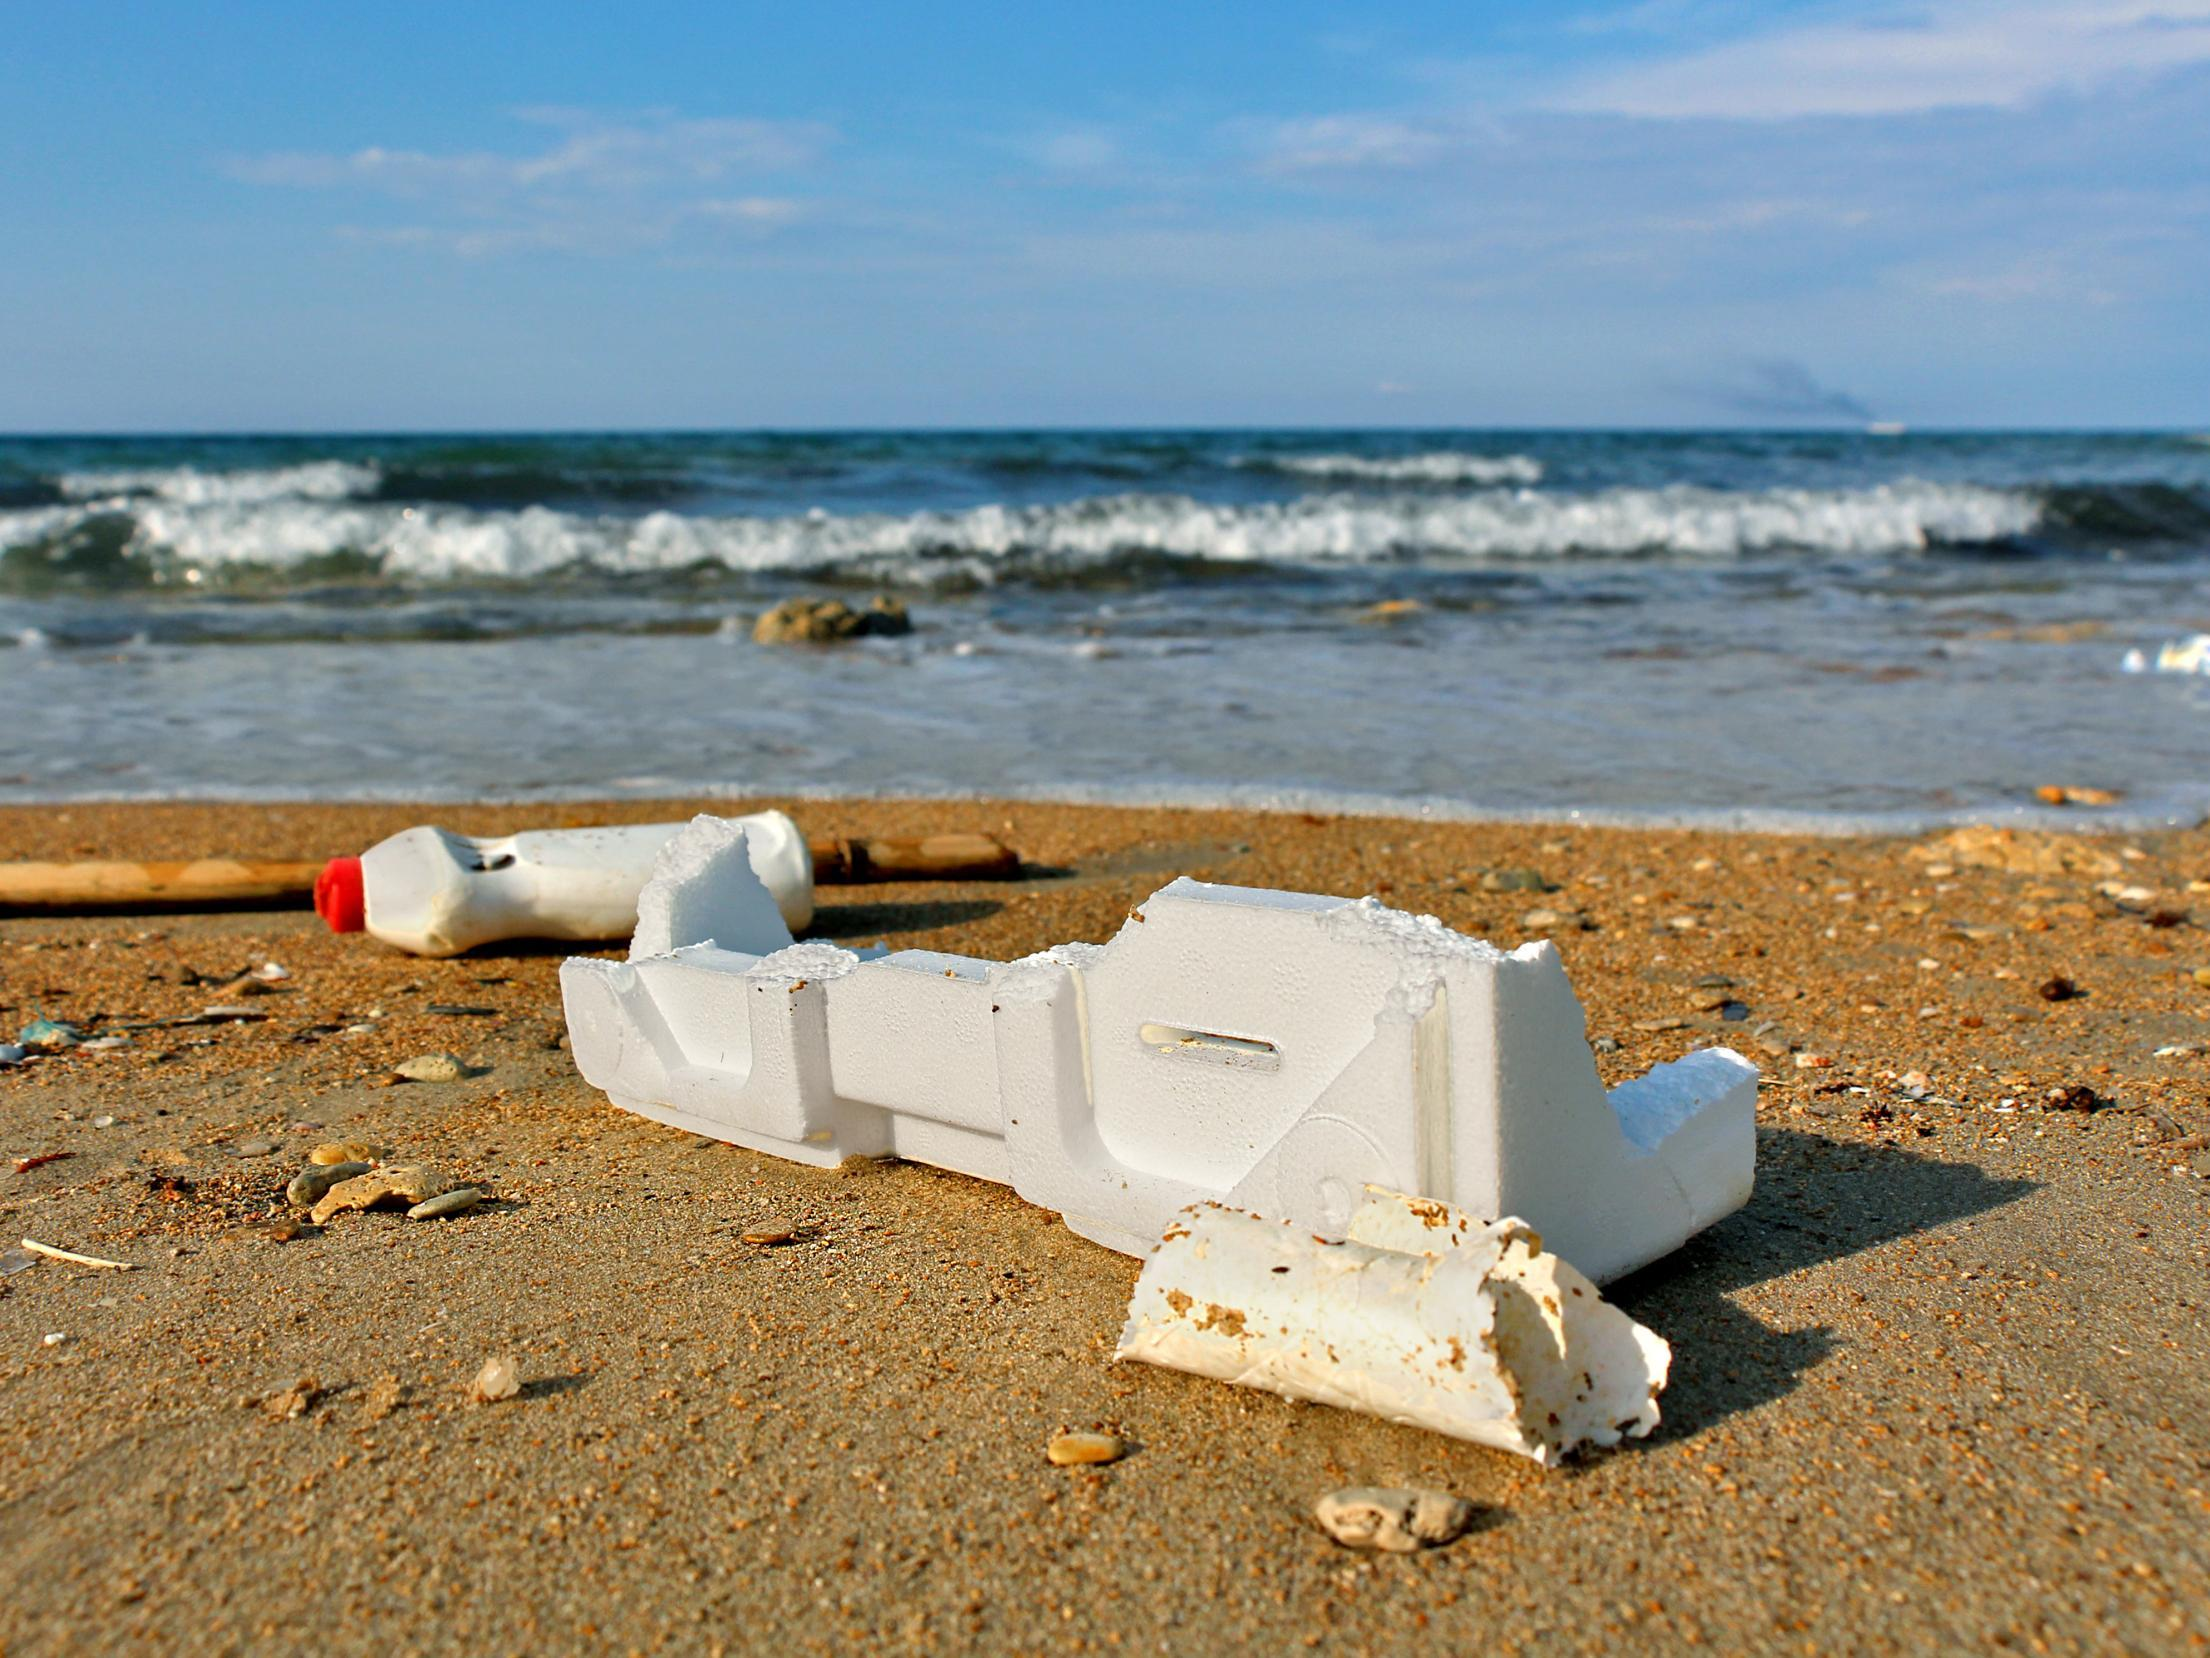 Sunlight can degrade polystyrene in just decades, rather than thousands of years, study finds